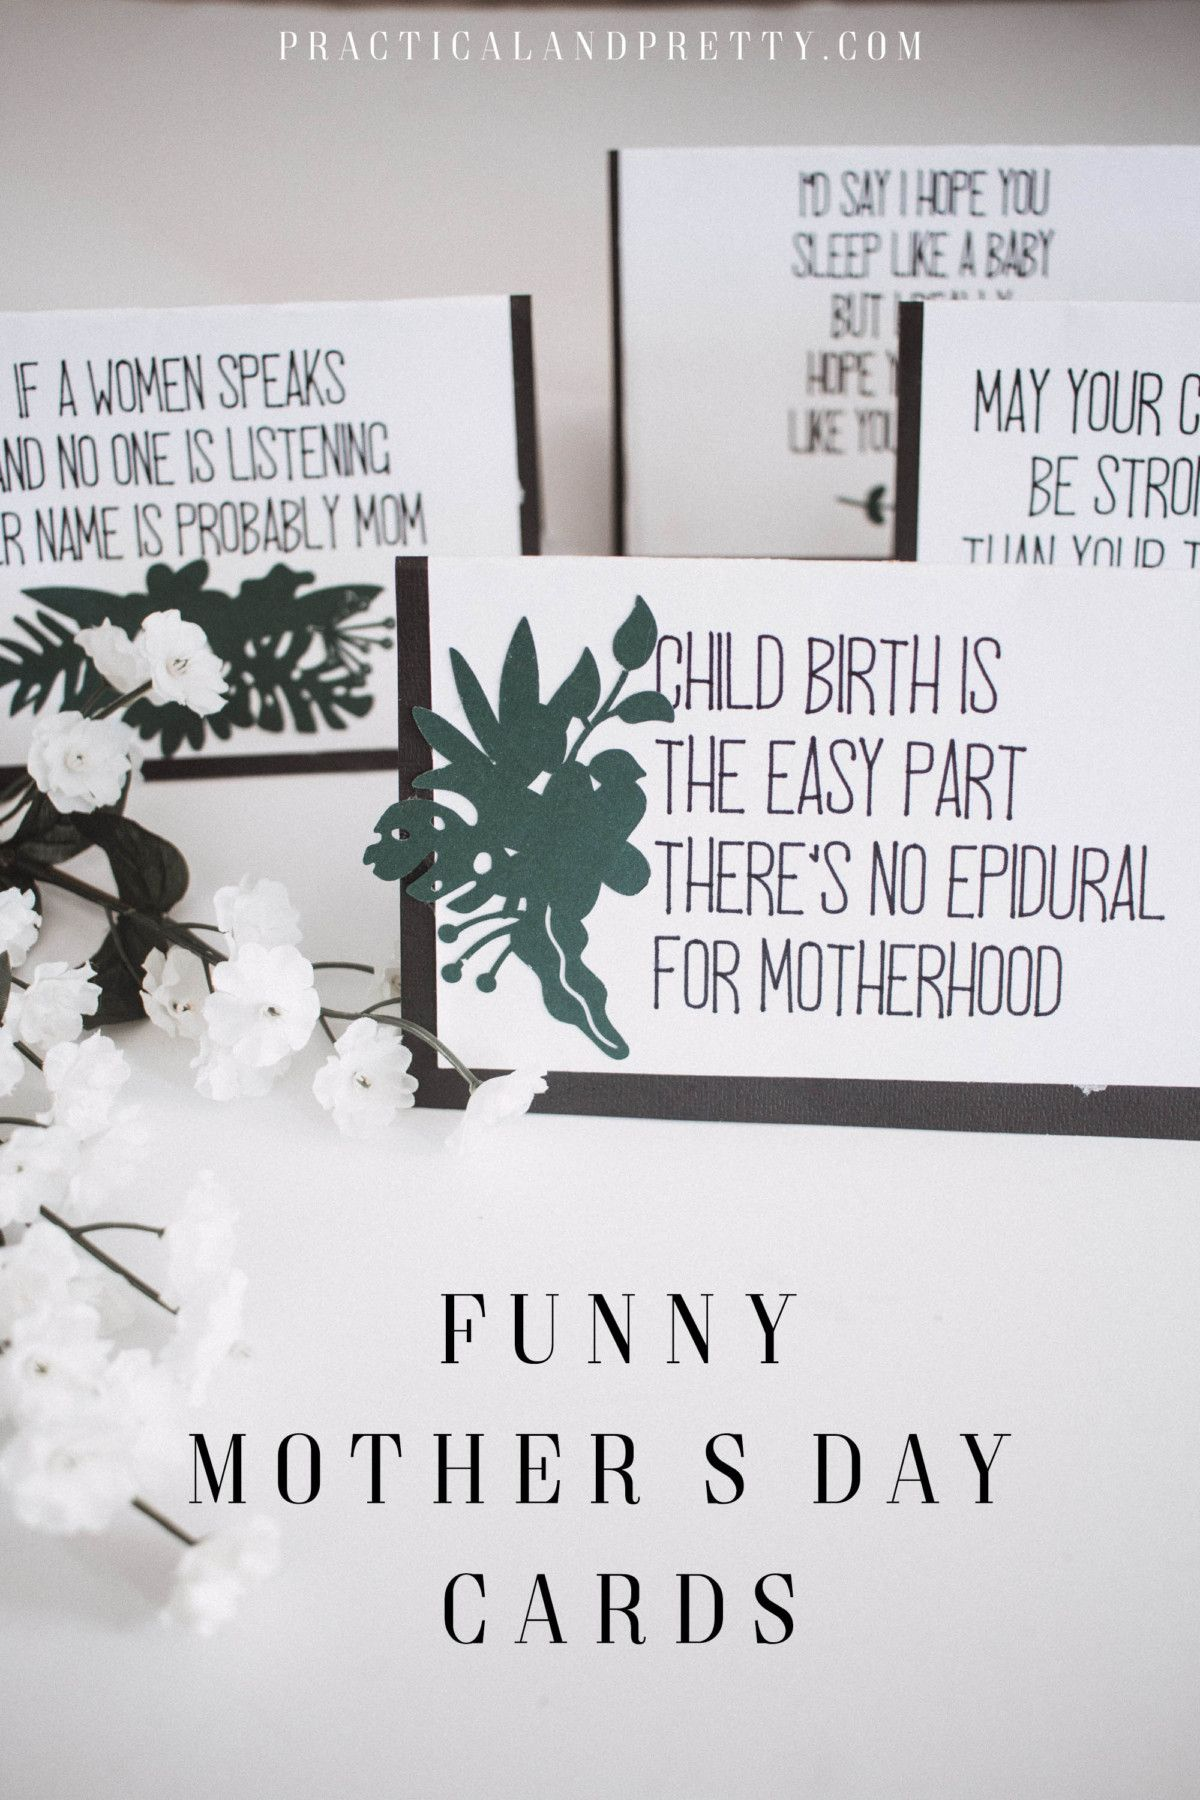 Funny Mother's Day Quotes Cards Mothers day quotes